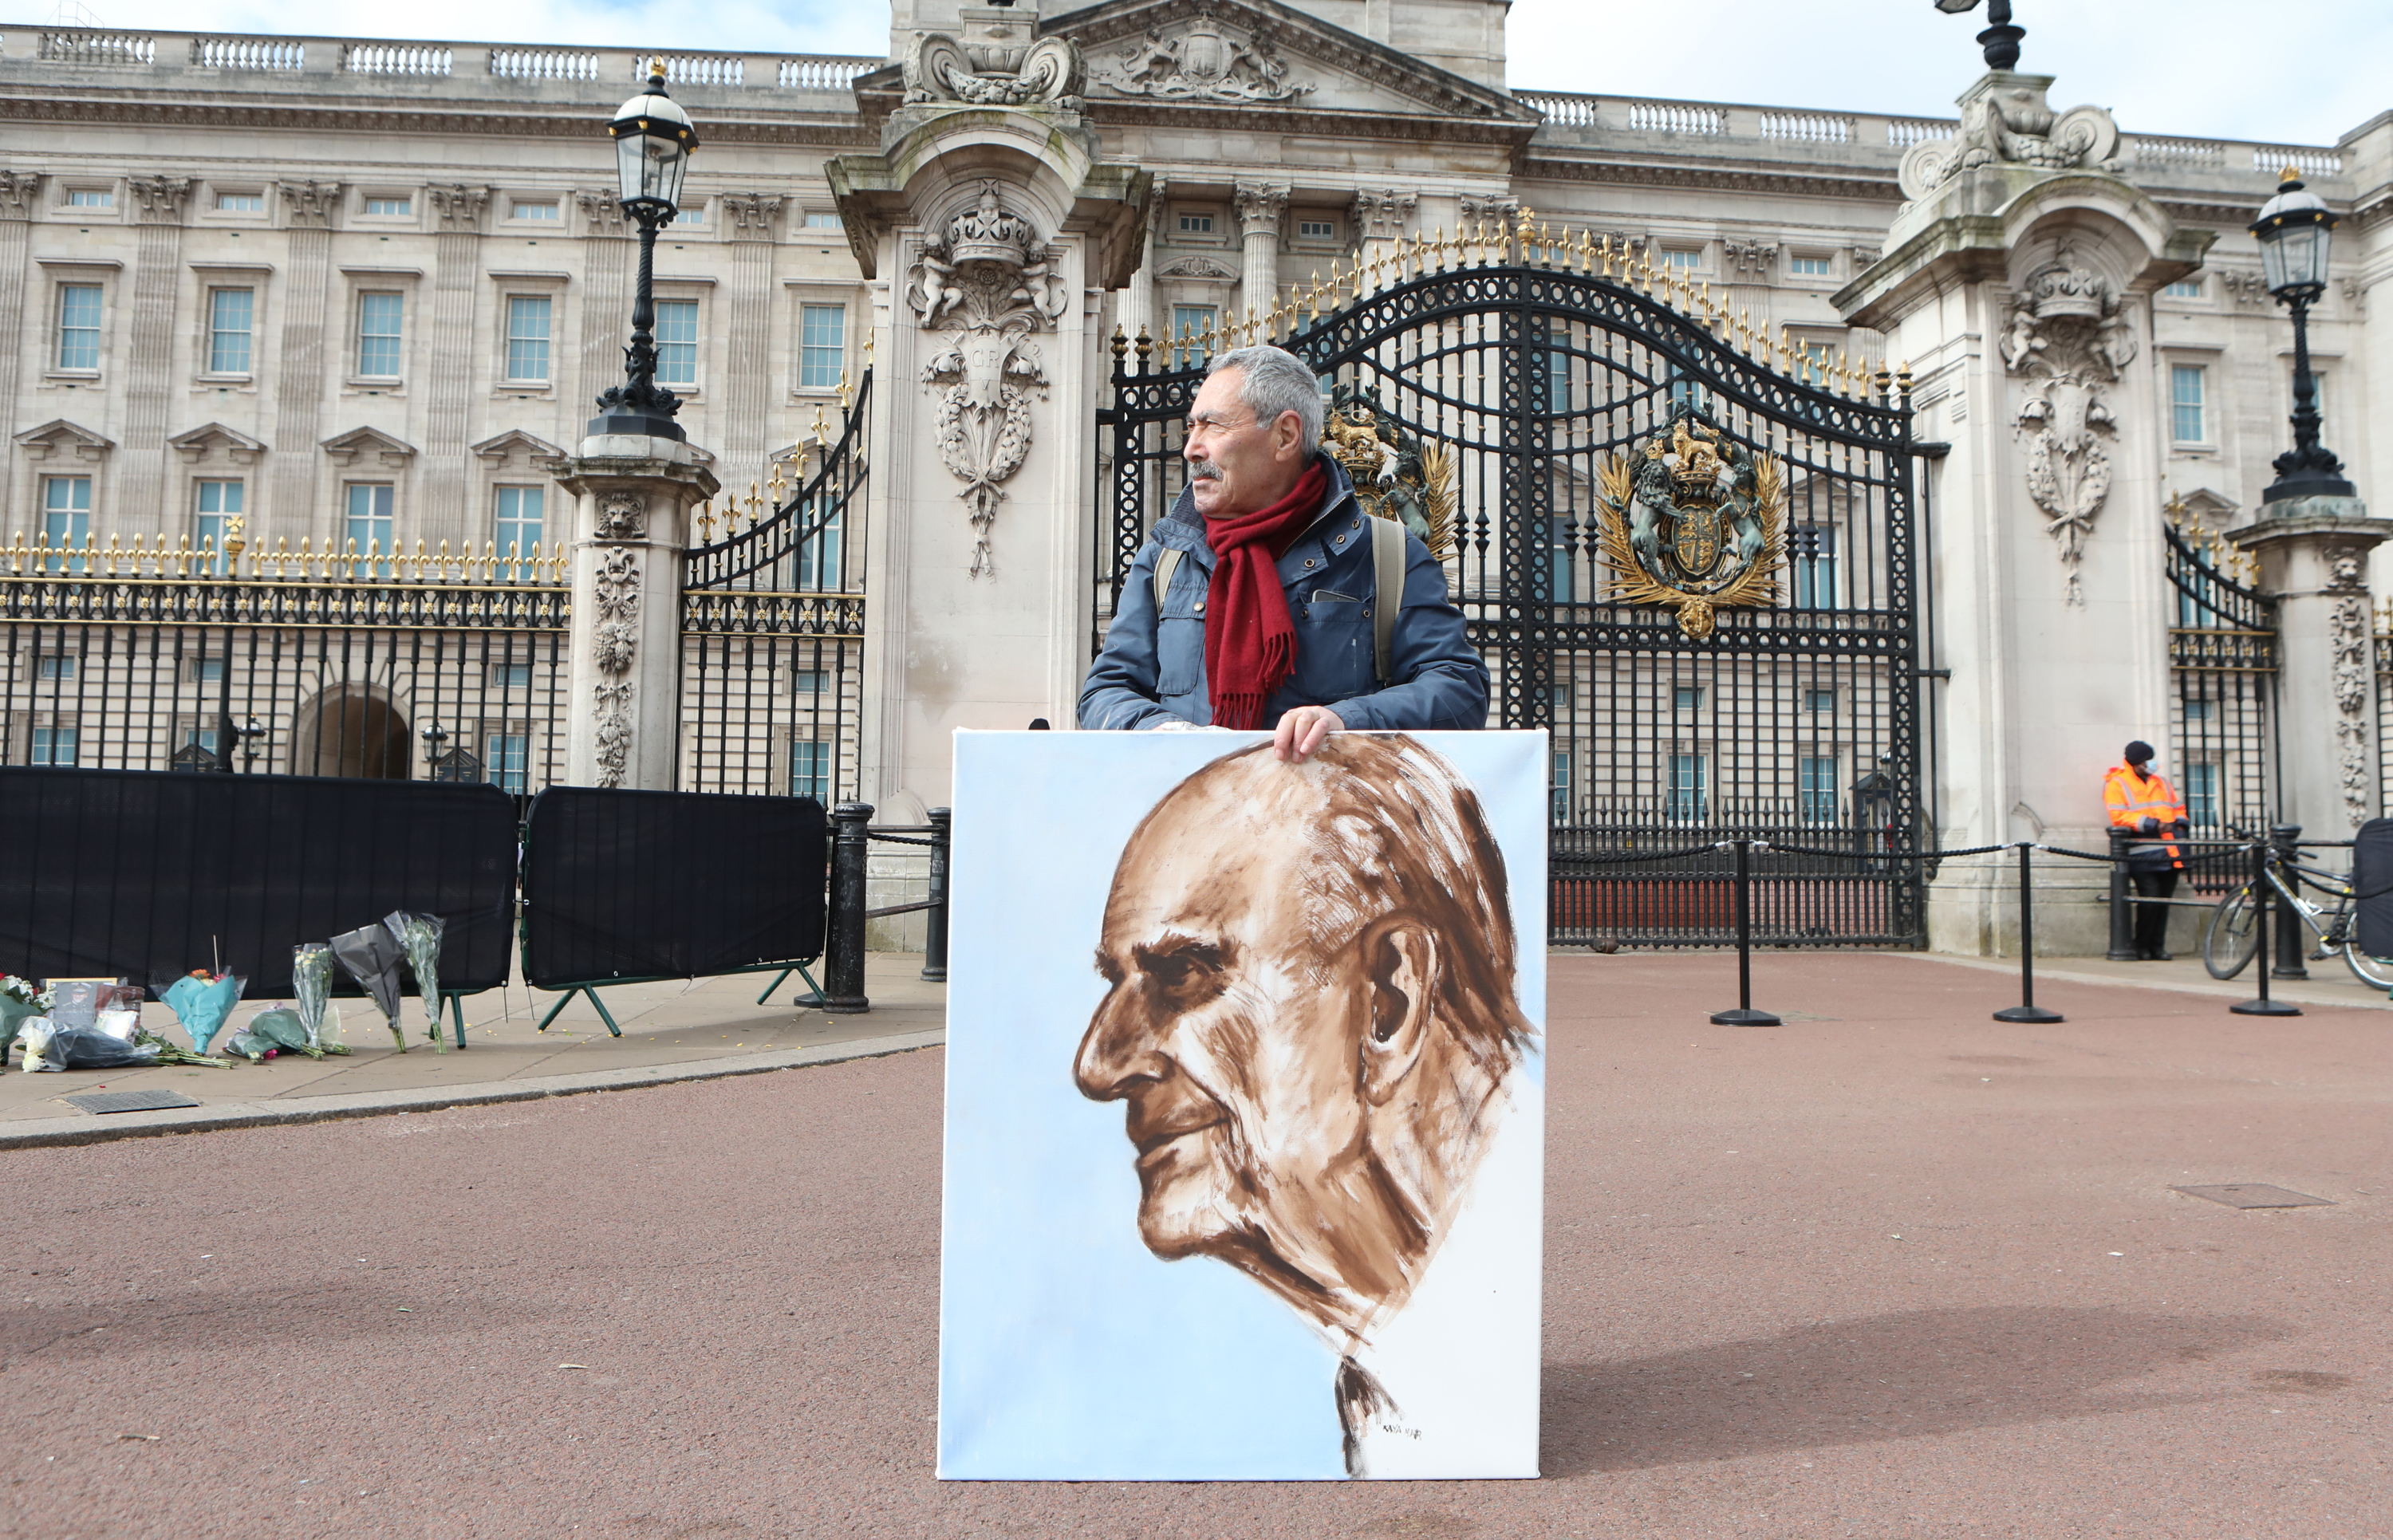 <p>Artist Kaya Mar holds a portrait he has painted of the Duke of Edinburgh outside Buckingham Palace, London, following the announcement on Friday April 9, of the death of the Dukeat the age of 99. Picture date: Monday April 12, 2021.</p>